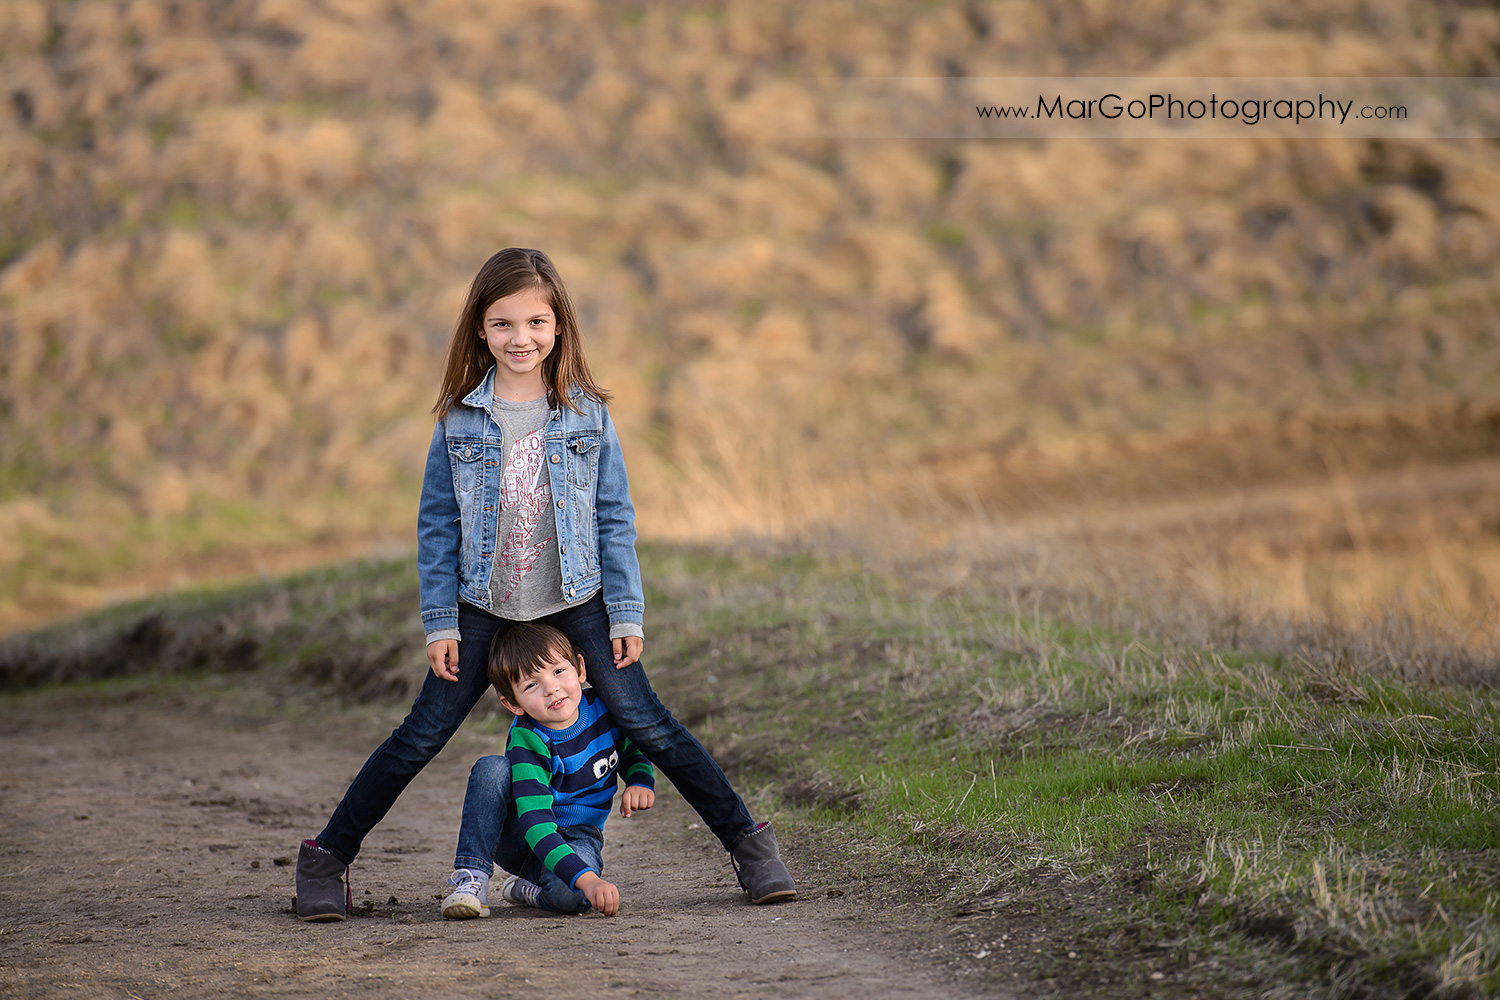 young girl standing over little boy during family session at Diablo Foothills Regional Park in Walnut Creek